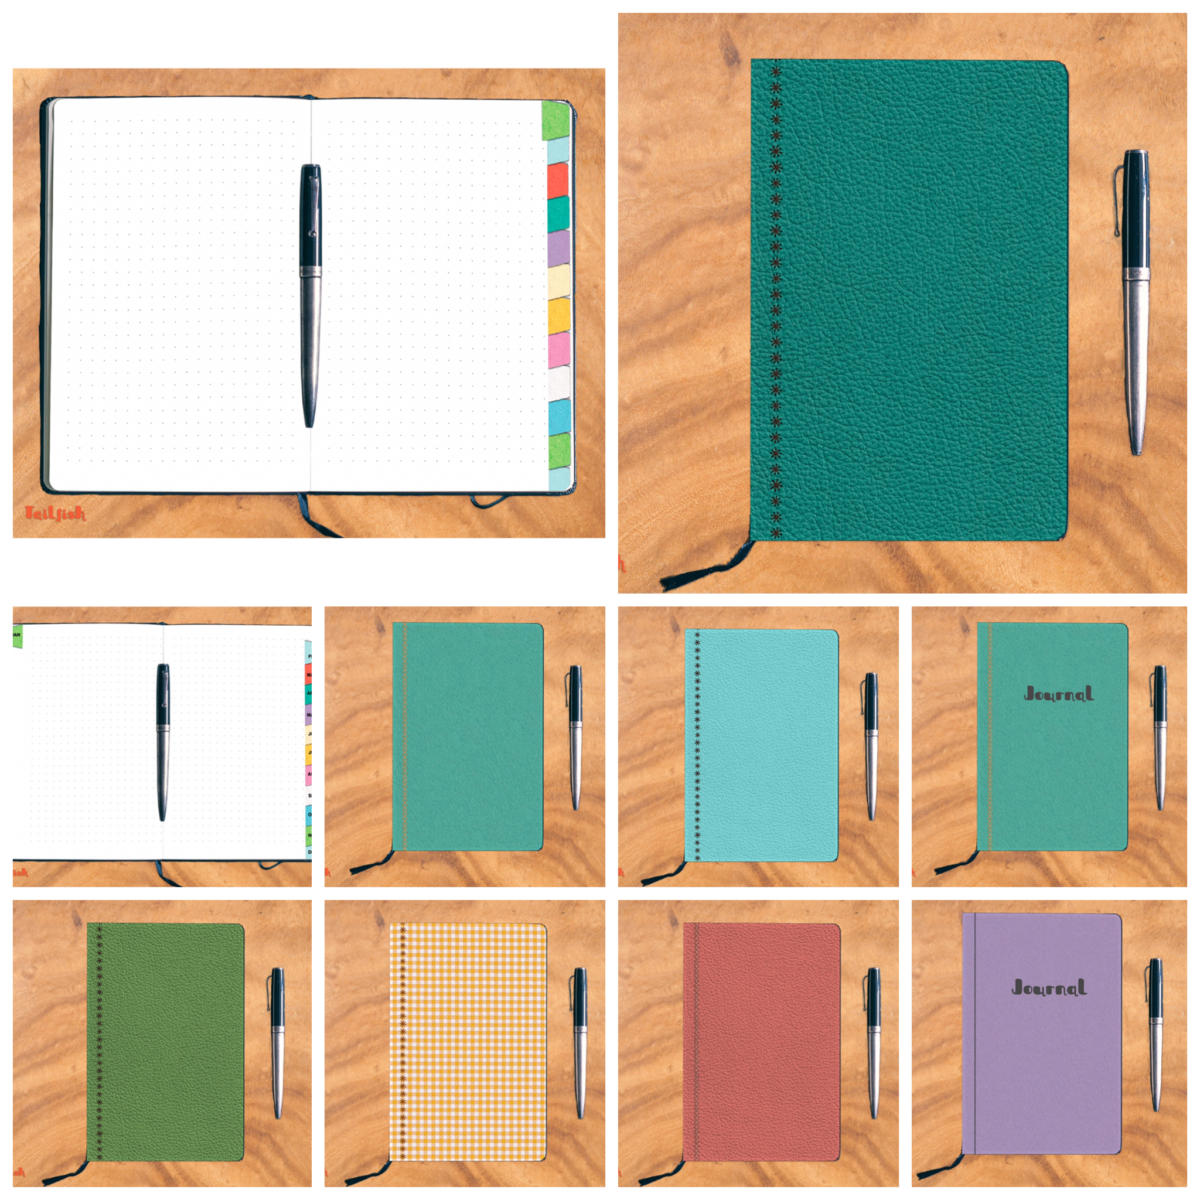 New in the store: Dot Grid style digital journals